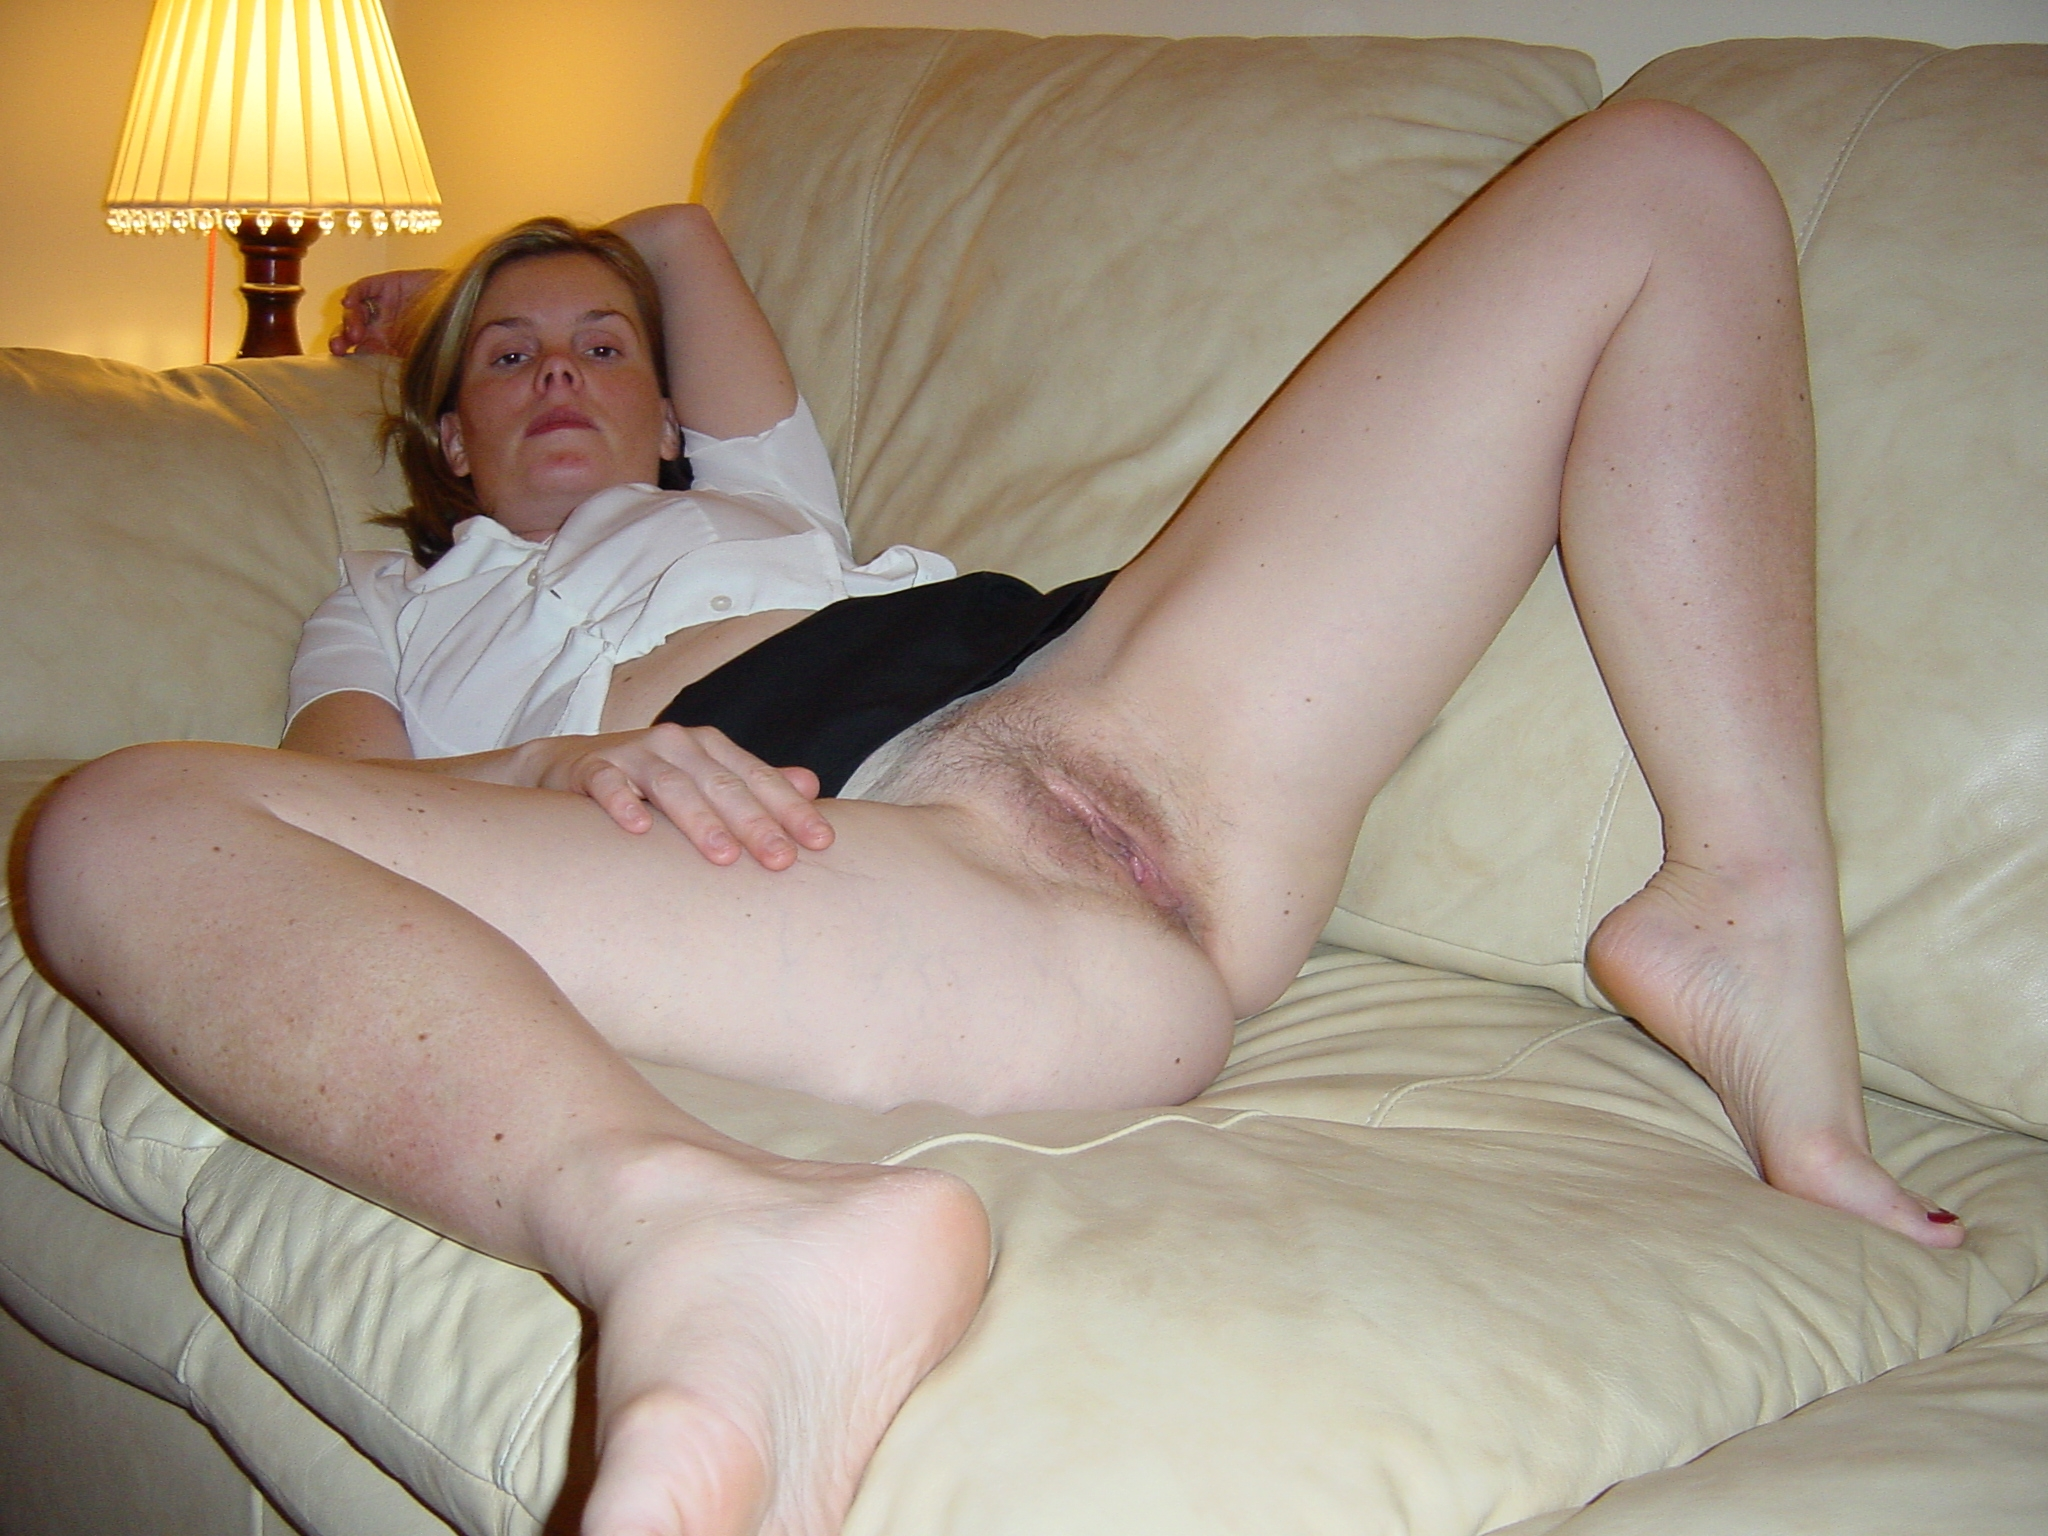 Amateur wife and a guy from craigslist doing the nasty 5